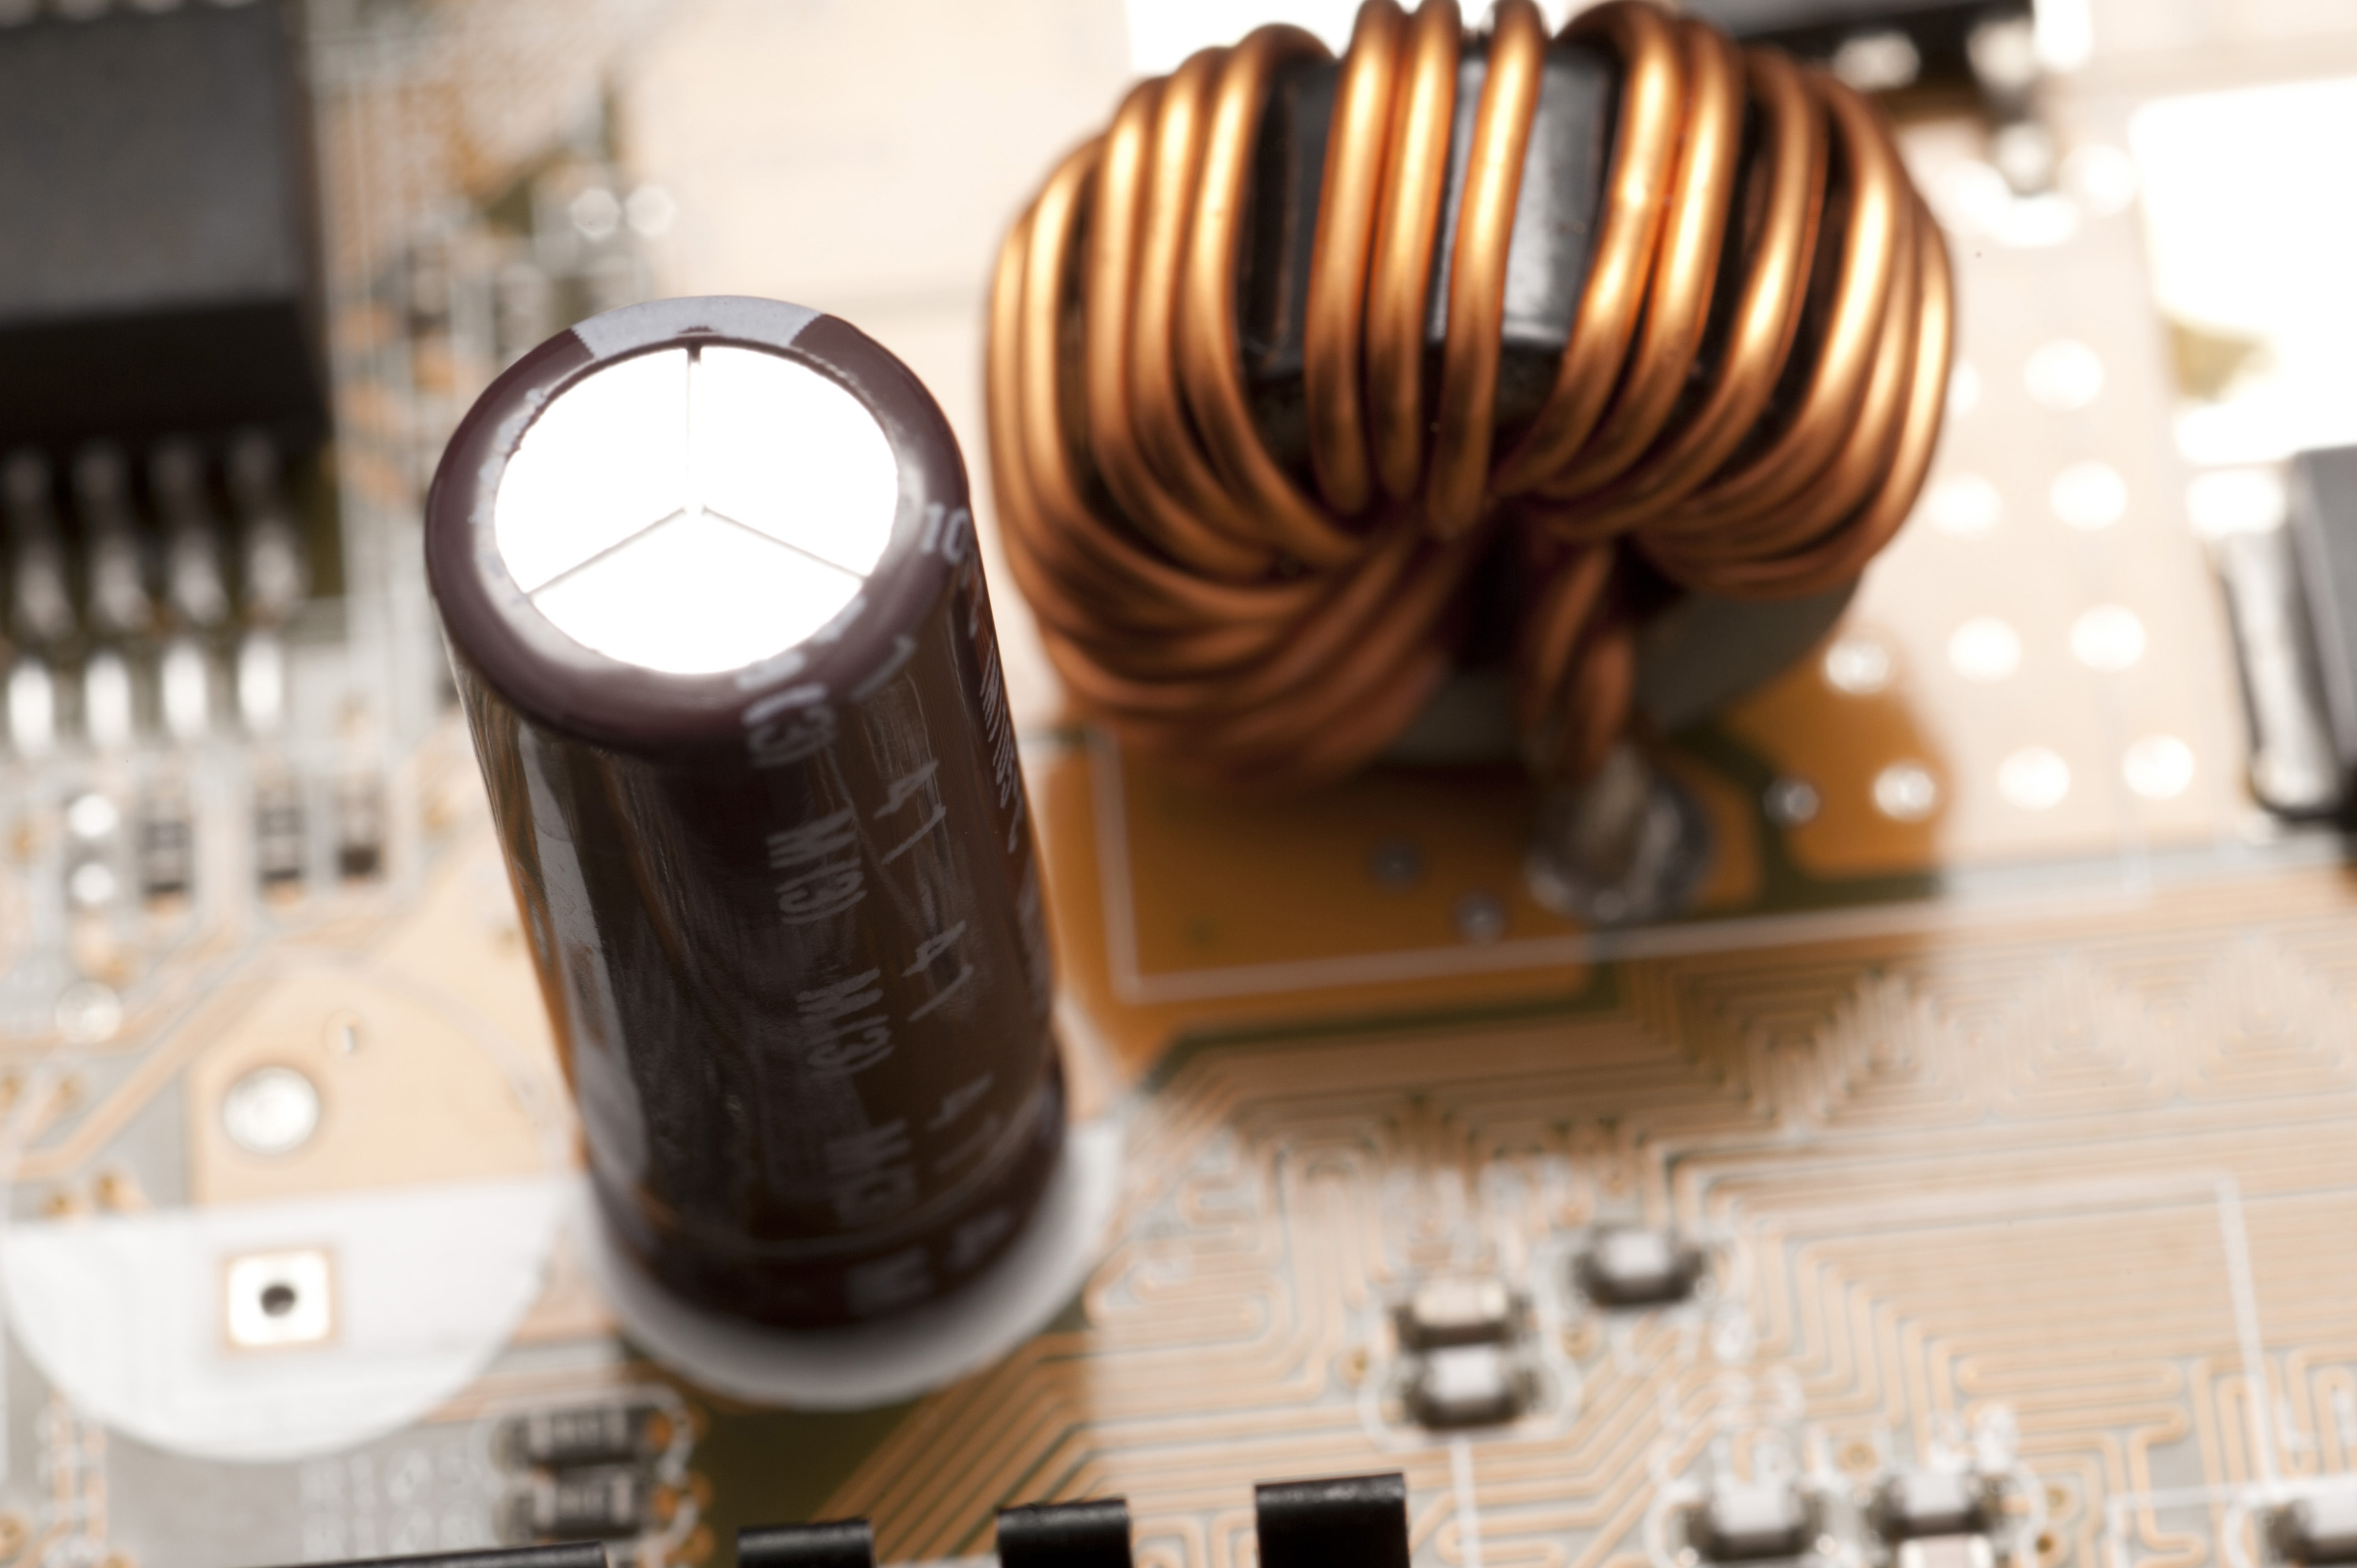 an emi choke inductor and filter capacitor in a switch mode power supply, used to filter high frequency from interefering with other electronics near by or connected to the supply